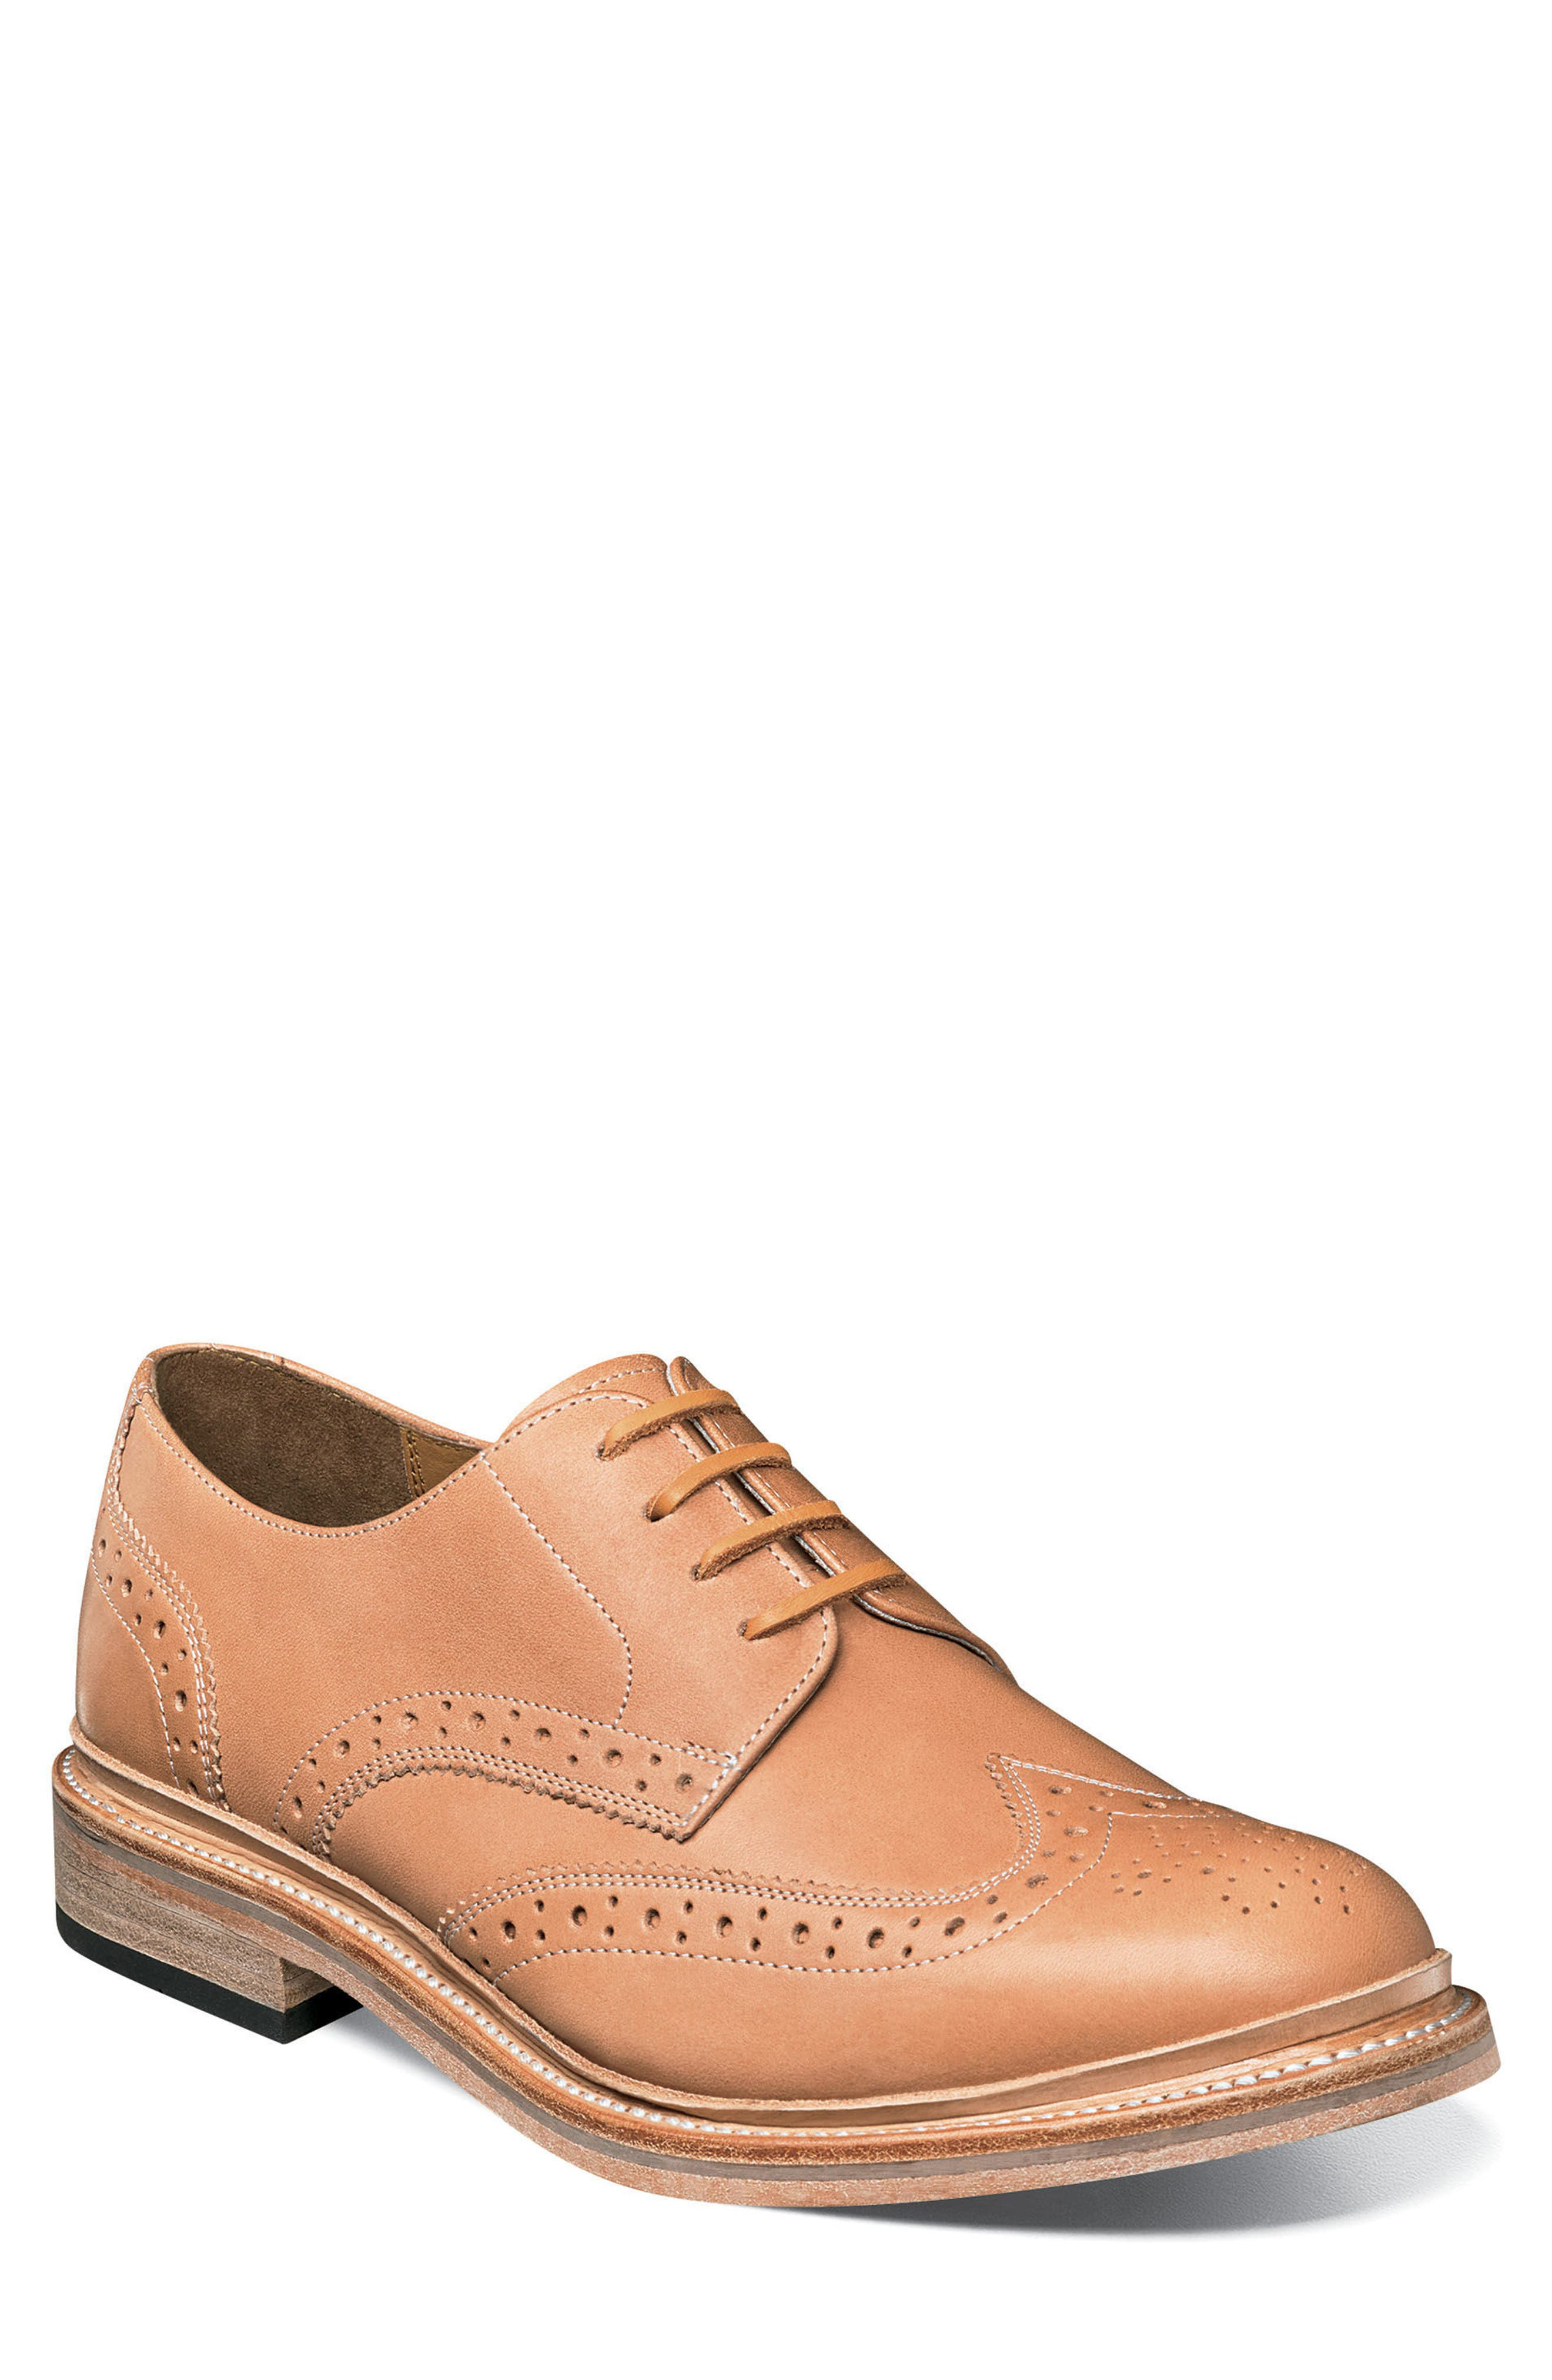 M2 Wingtip Derby,                         Main,                         color, NATURAL LEATHER